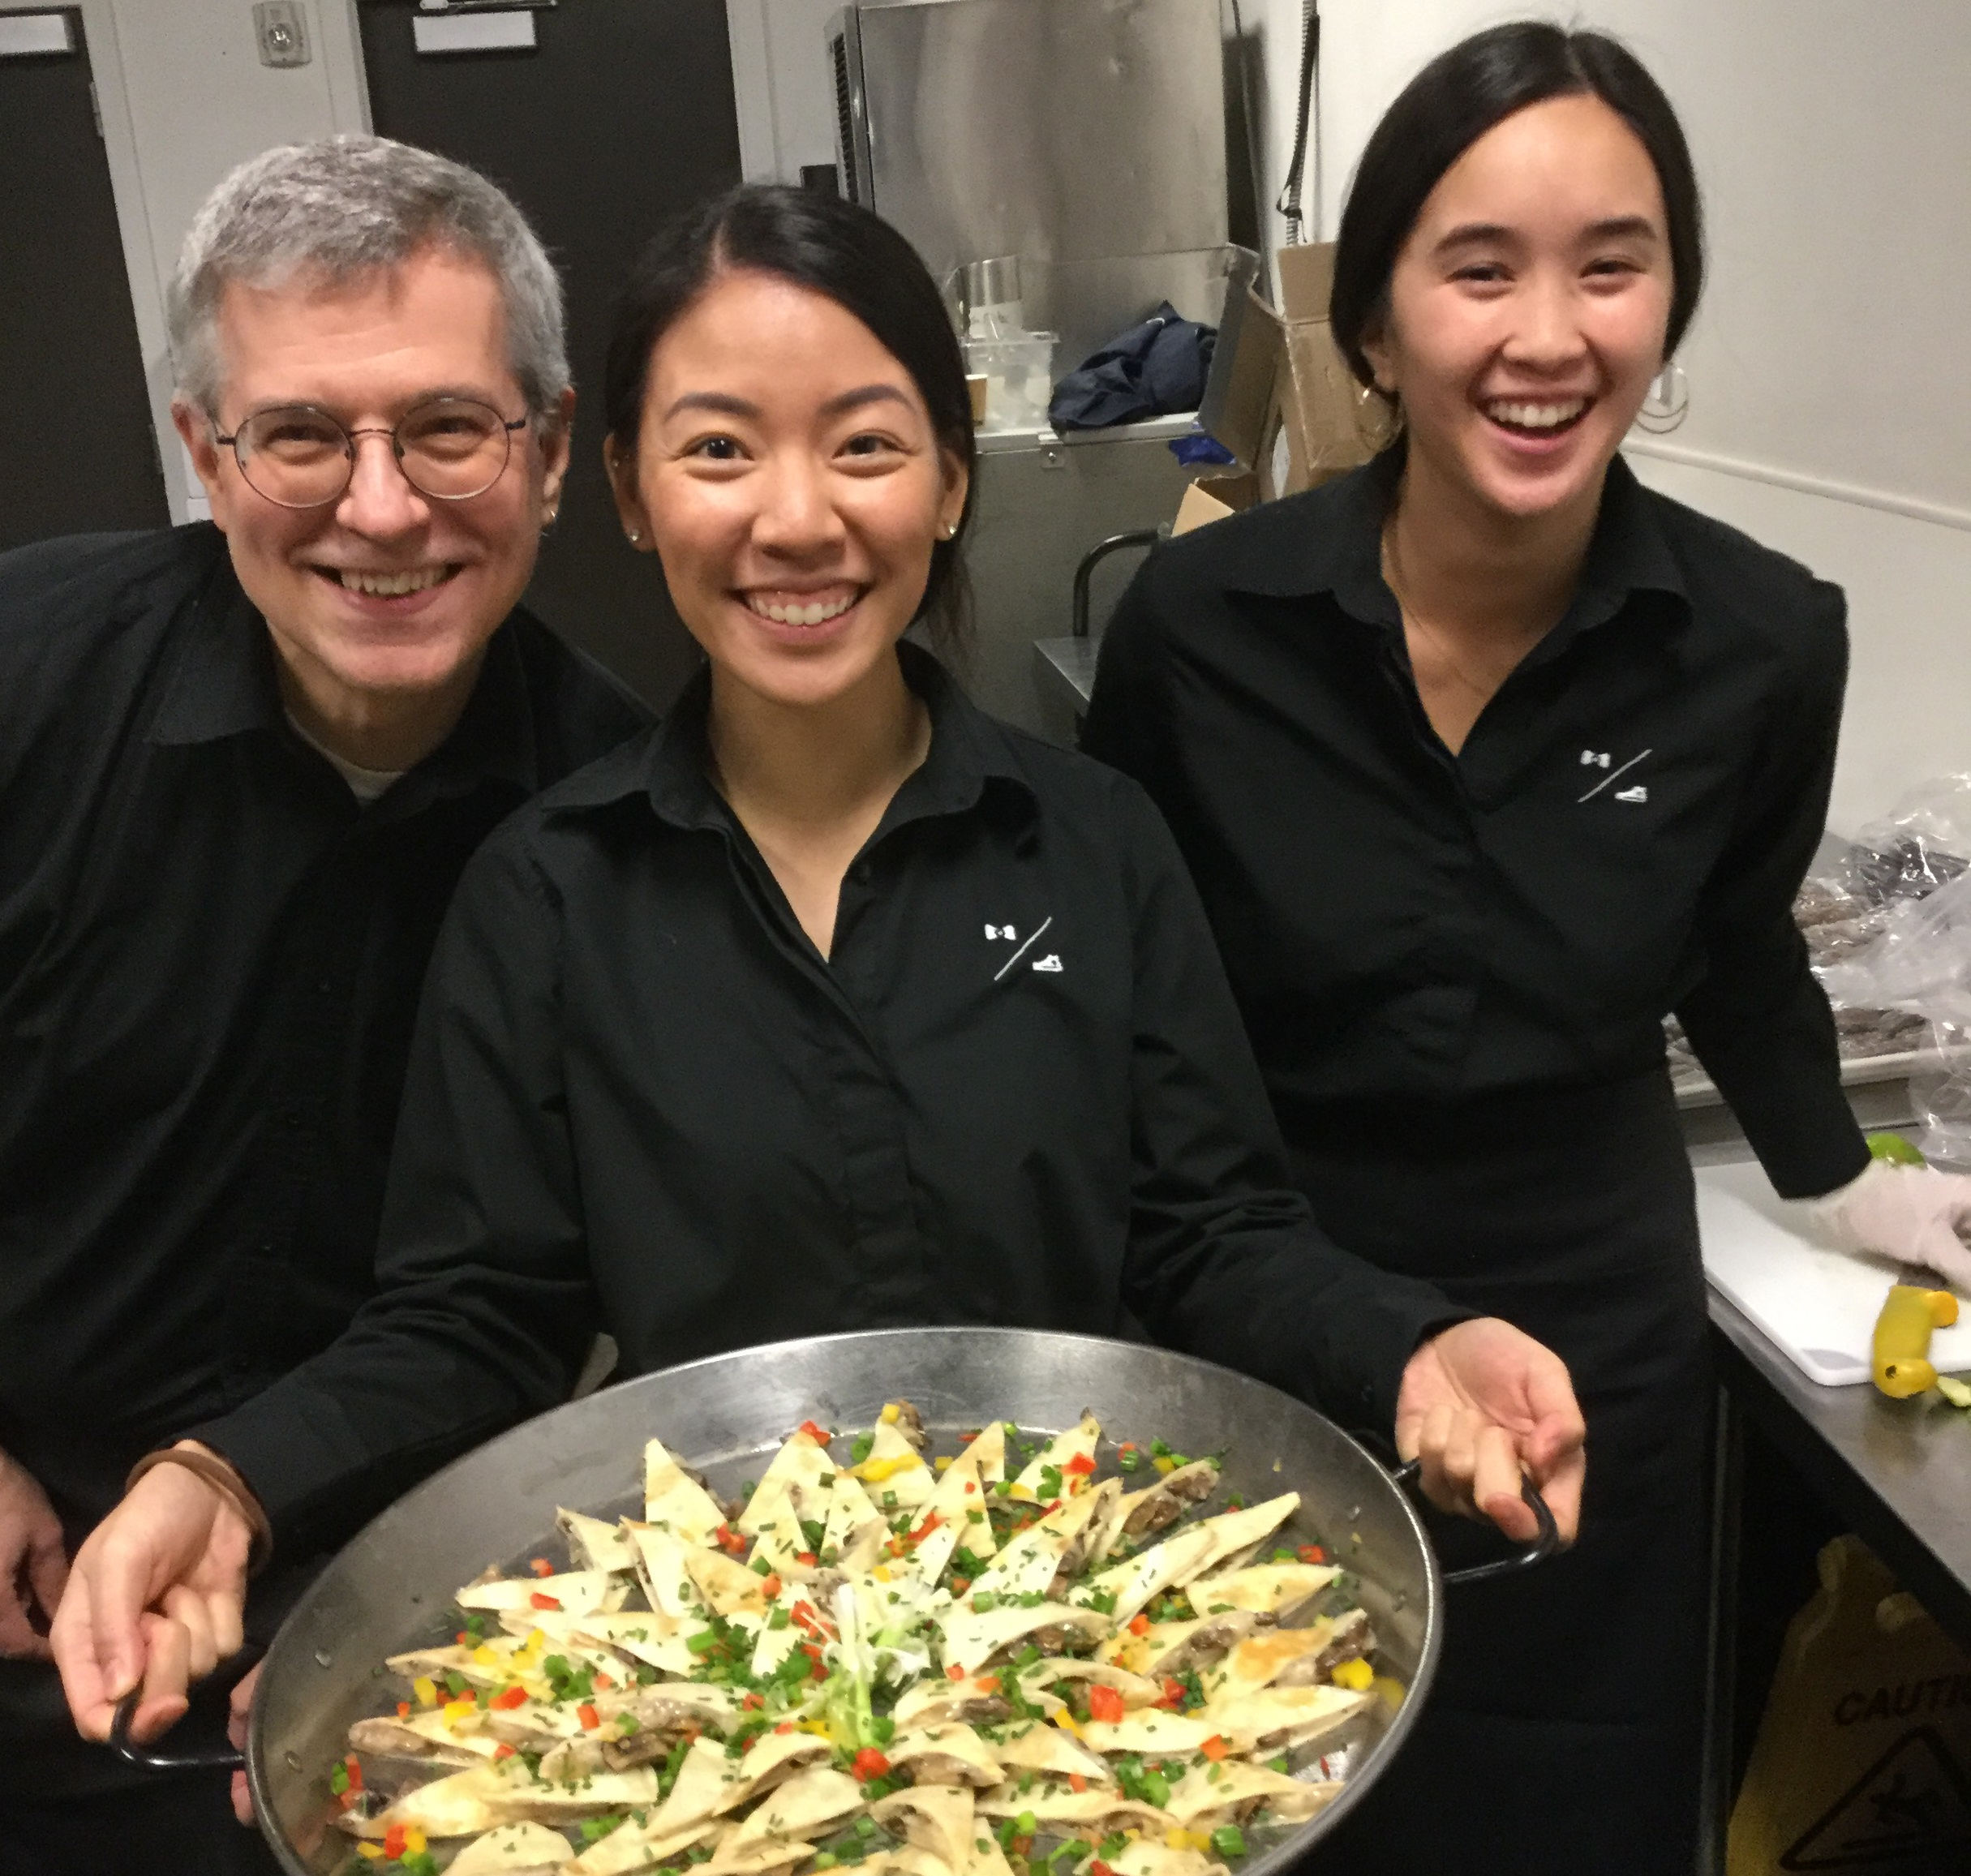 T&T catering servers at Melrose Market Studios in Seattle.